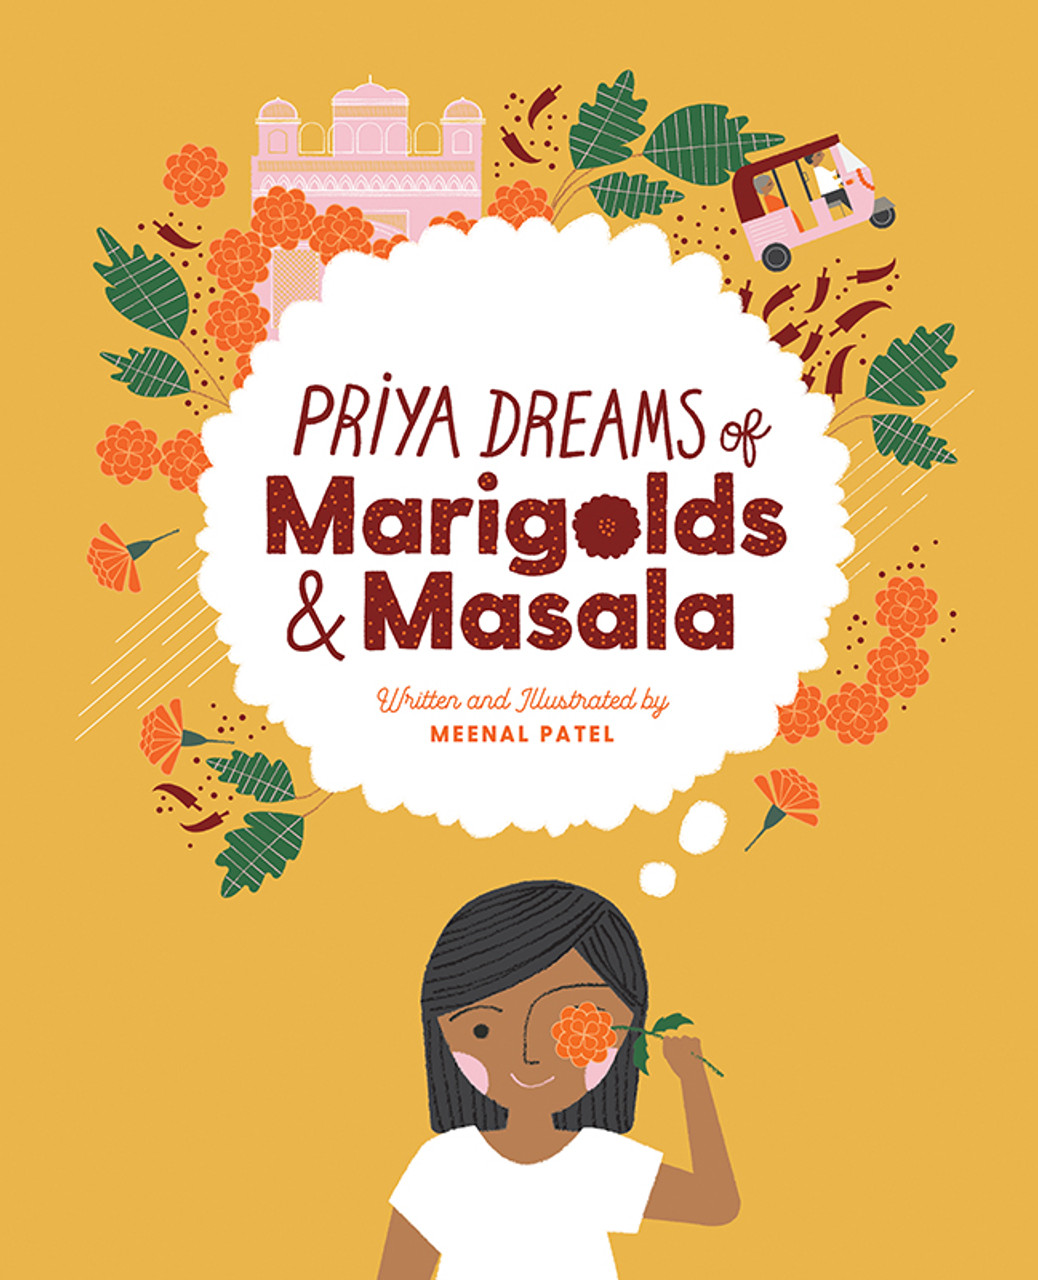 Priya Dreams of Marigolds & Masala